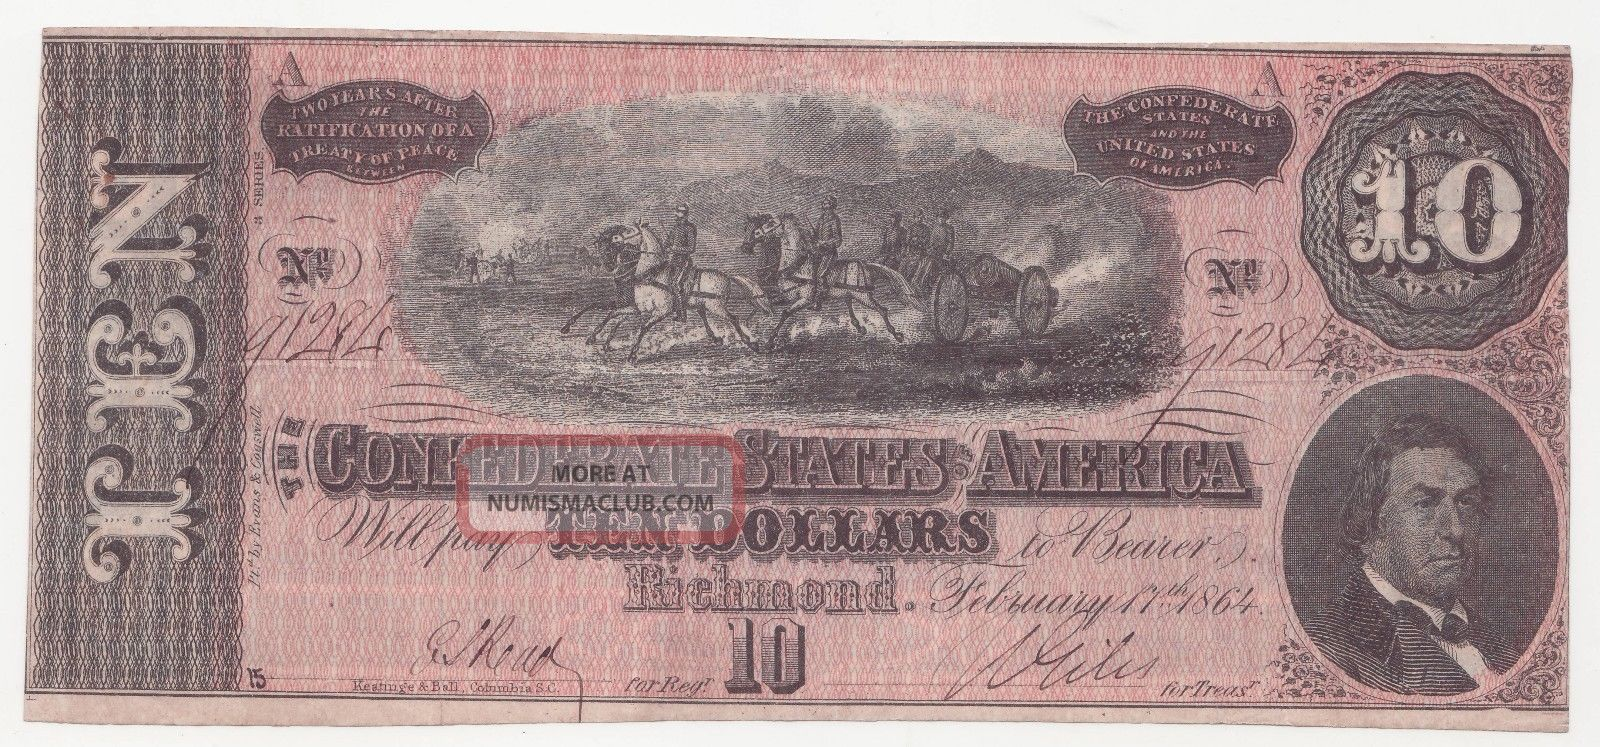 1864 Confederate States Of America Ten Dollar Bill $10 Us Currency T - 68 Richmond Paper Money: US photo